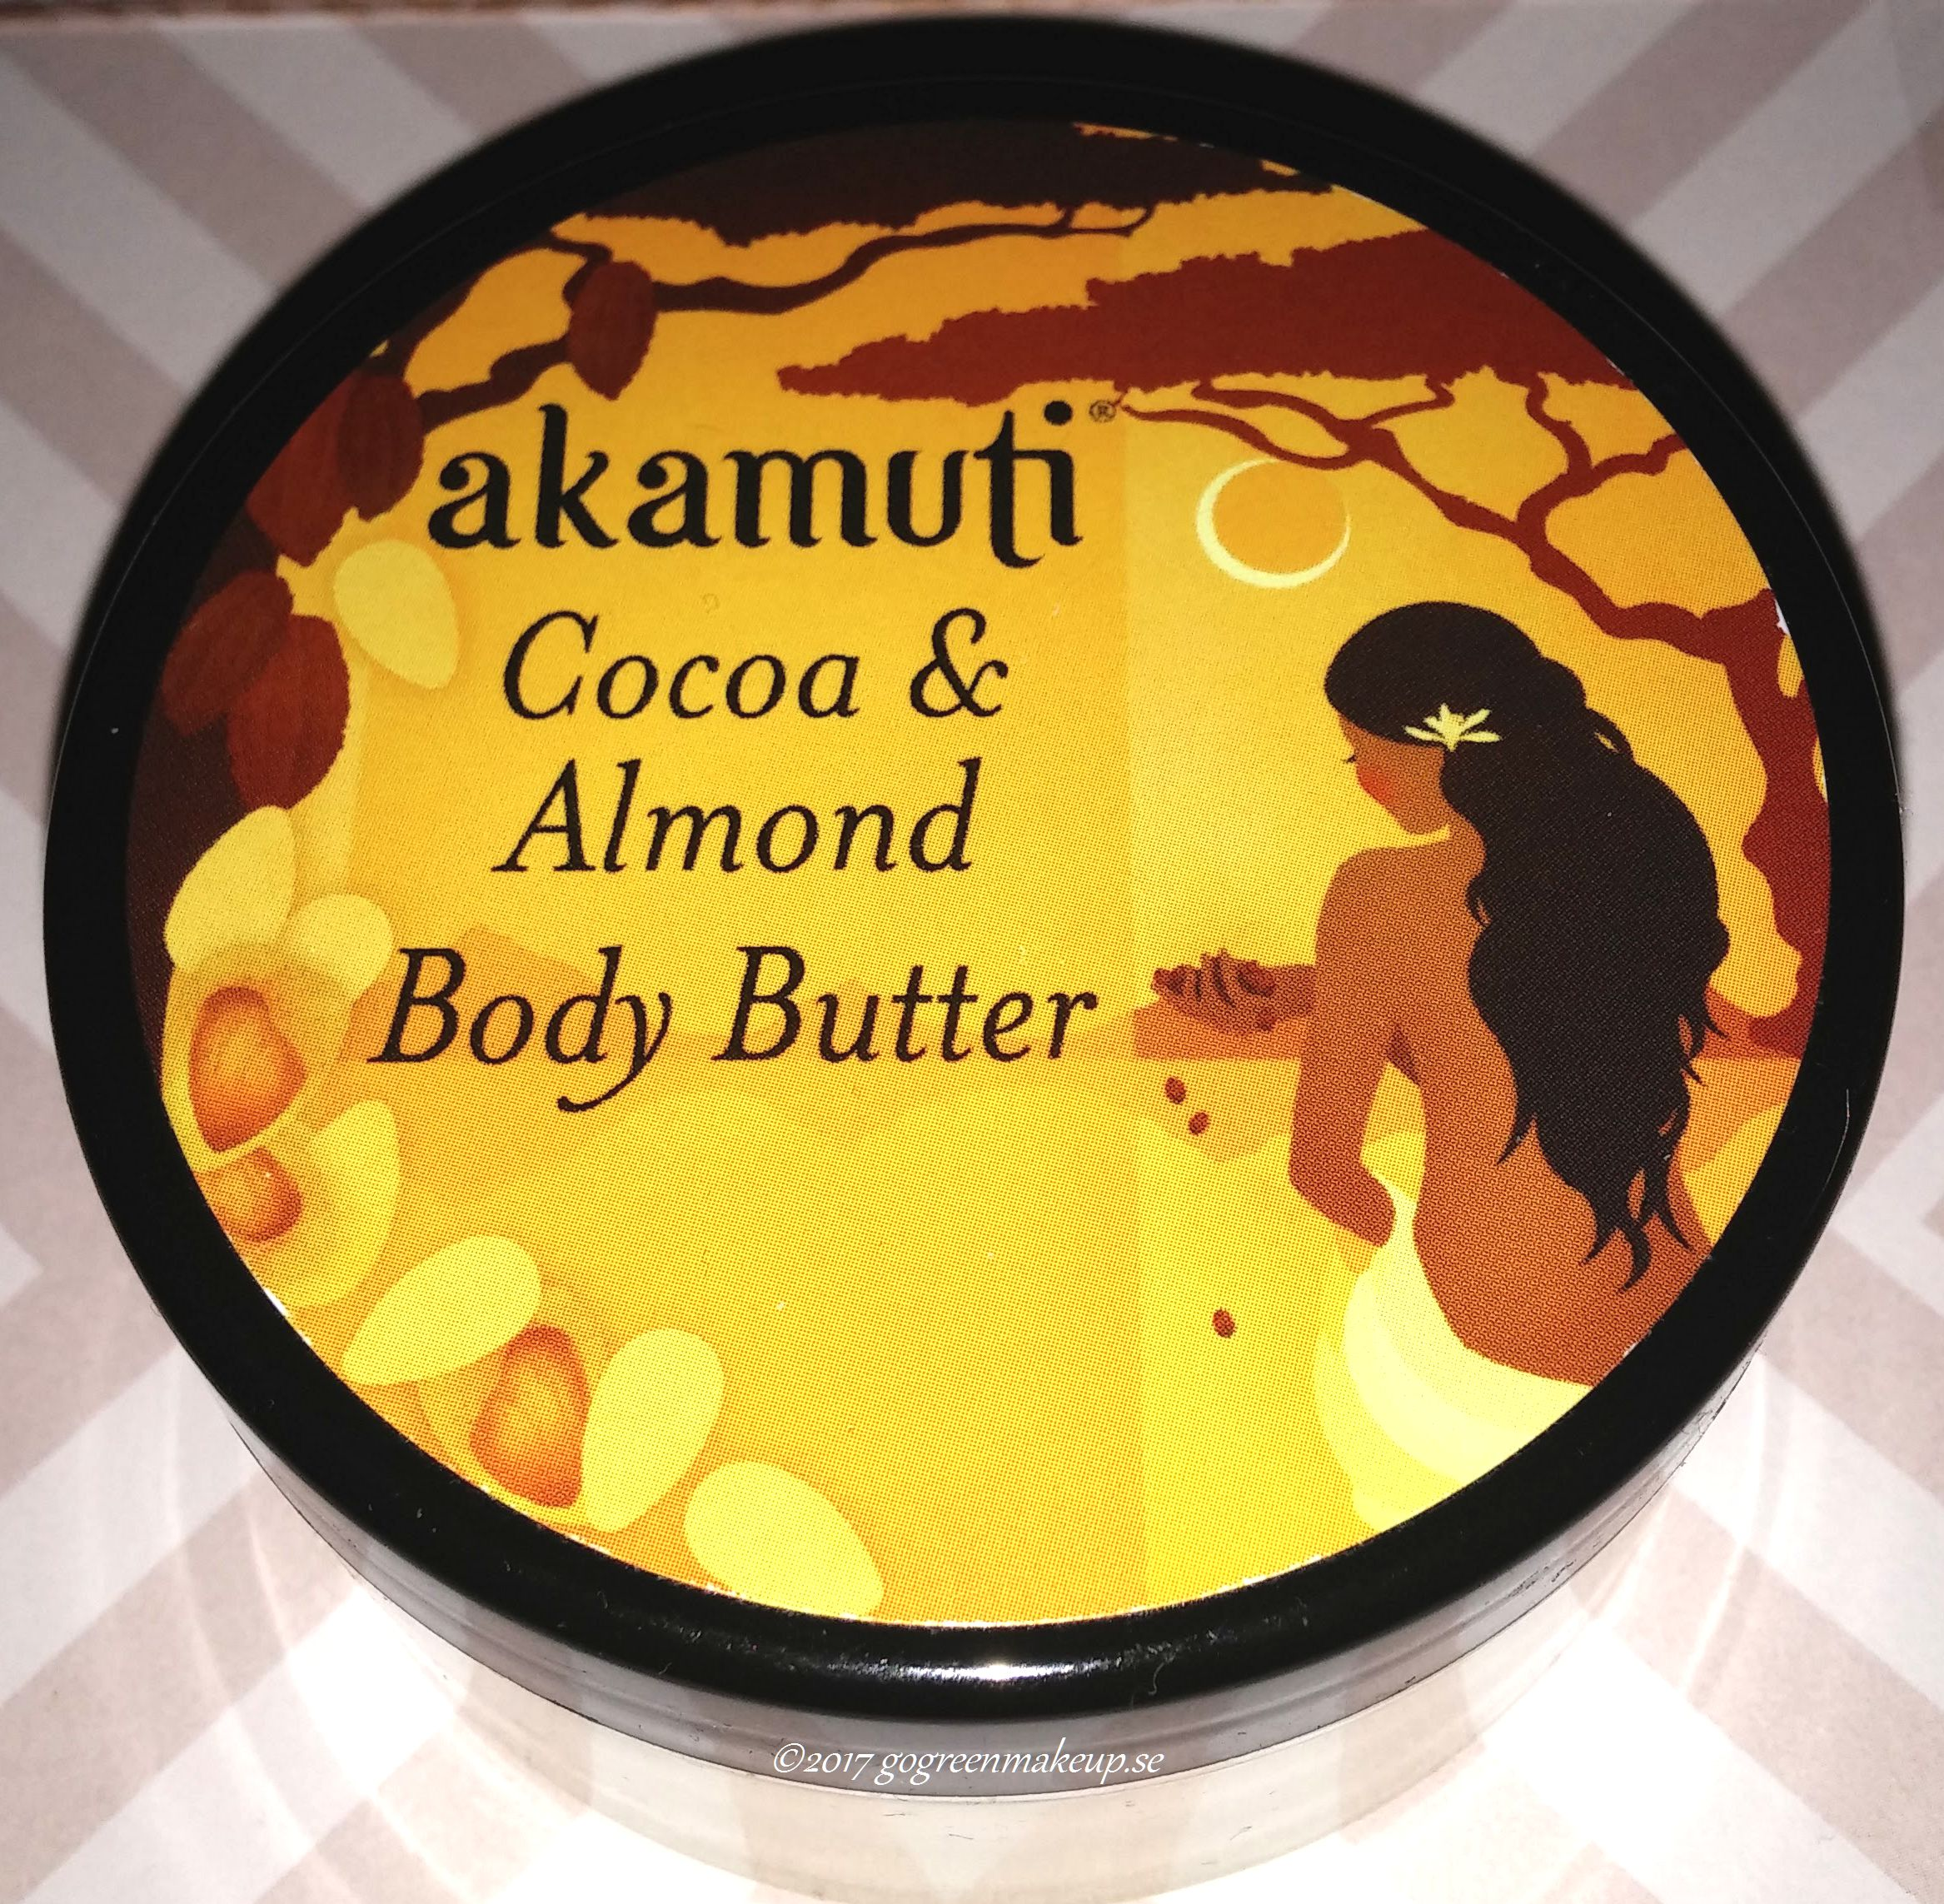 Cocao Almond Body Butter från Akamuti